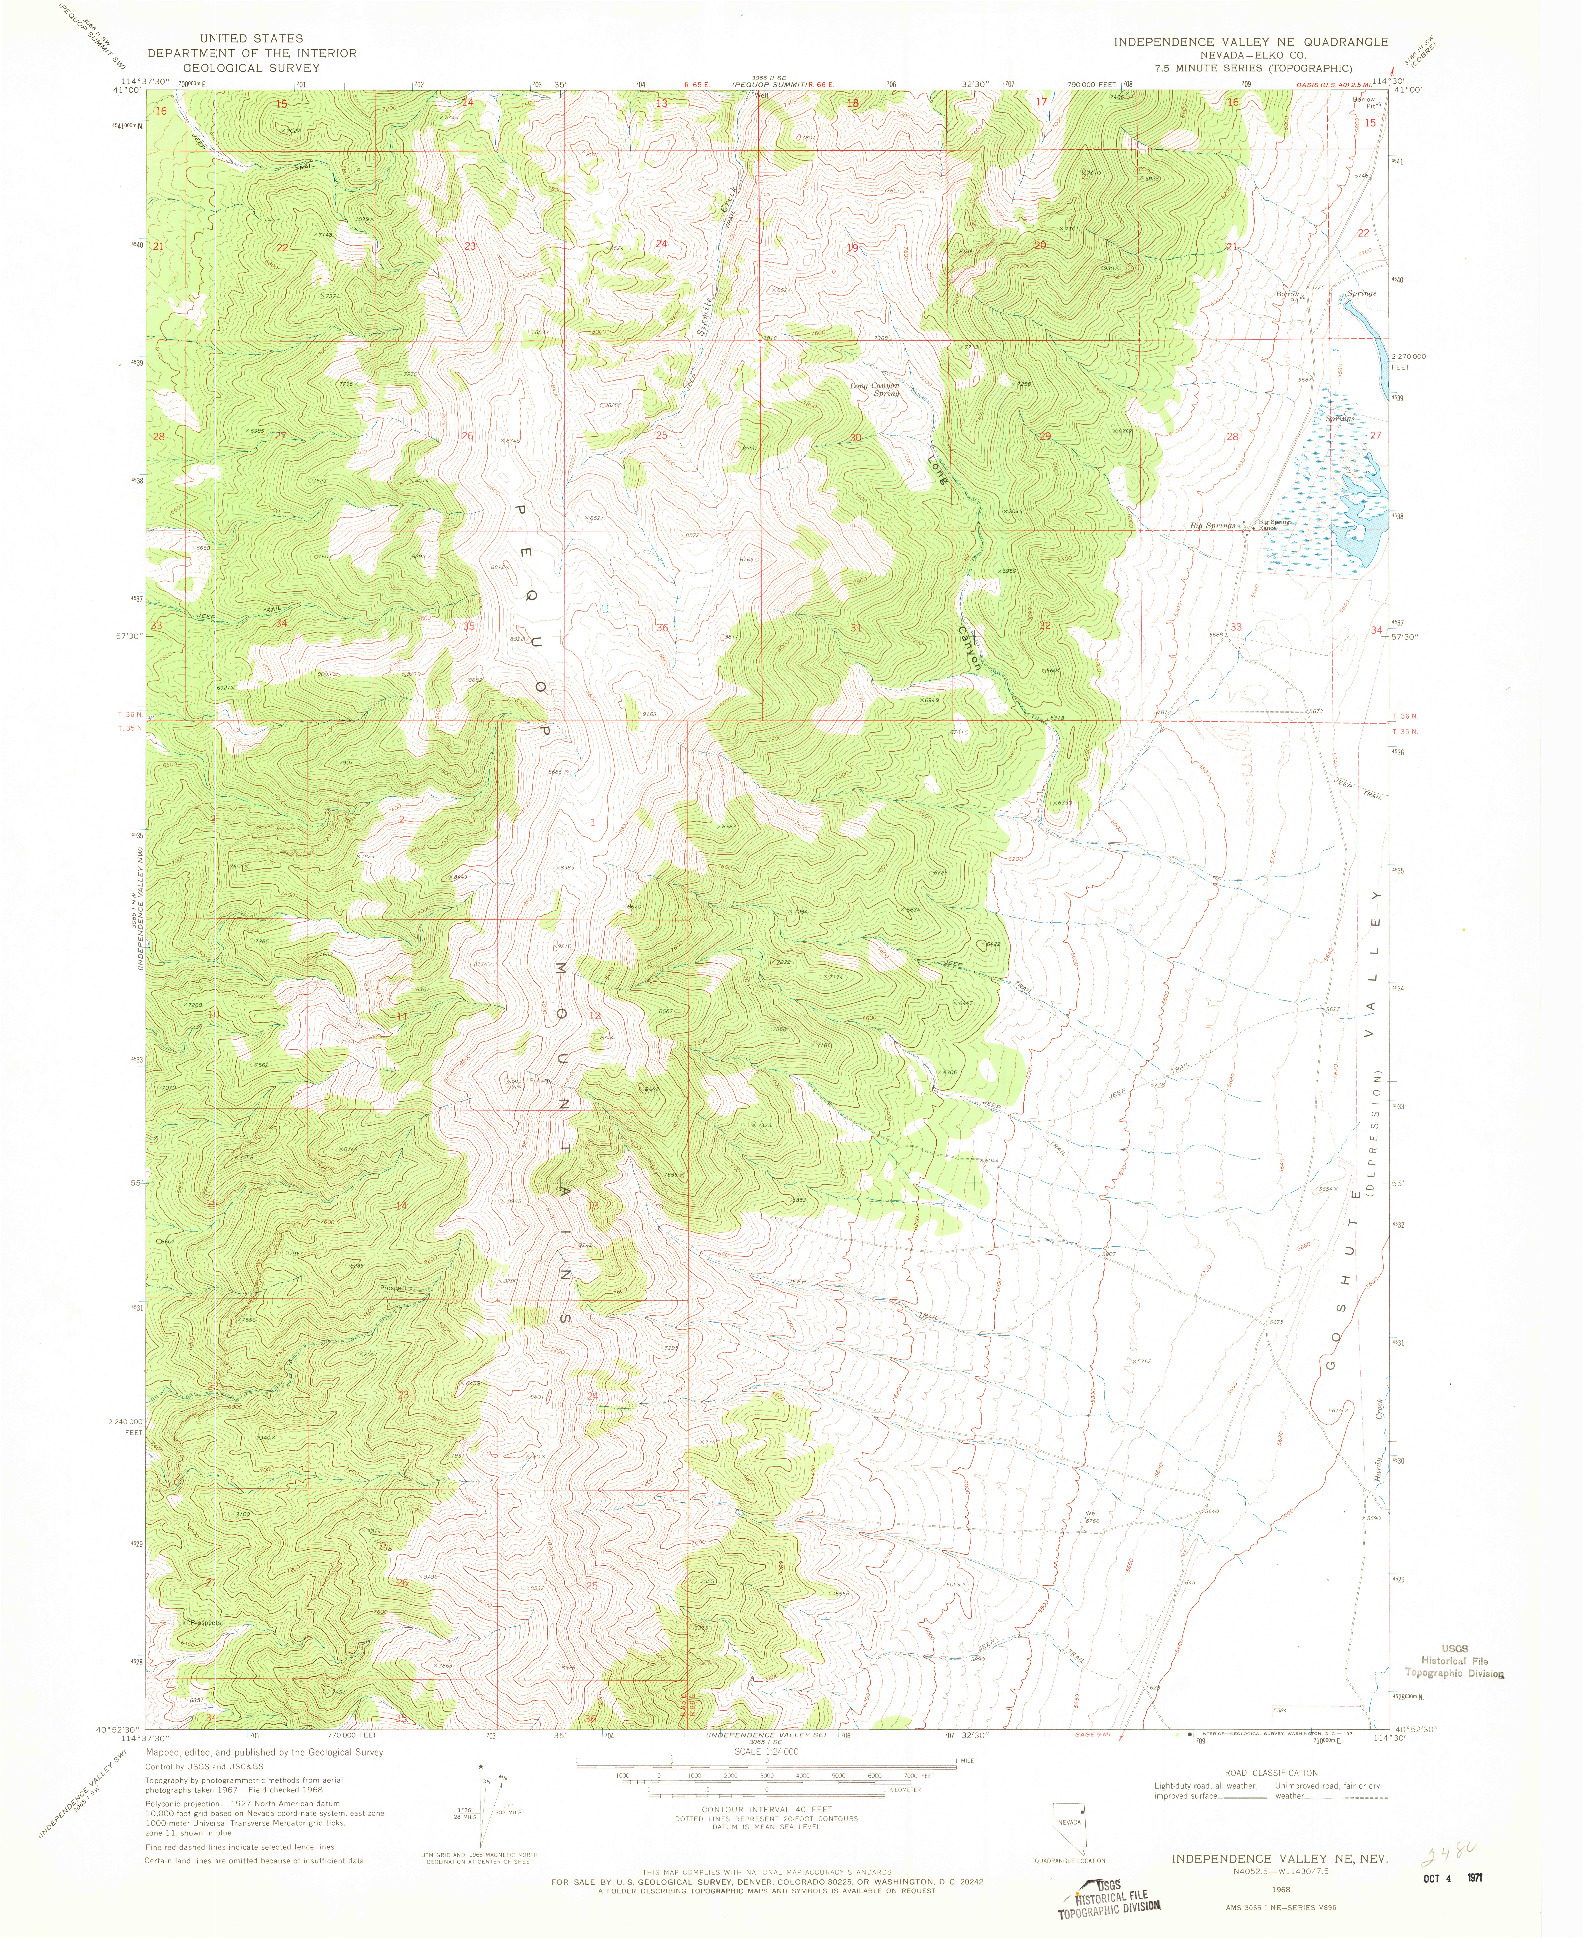 USGS 1:24000-SCALE QUADRANGLE FOR INDEPENDENCE VALLEY NE, NV 1968